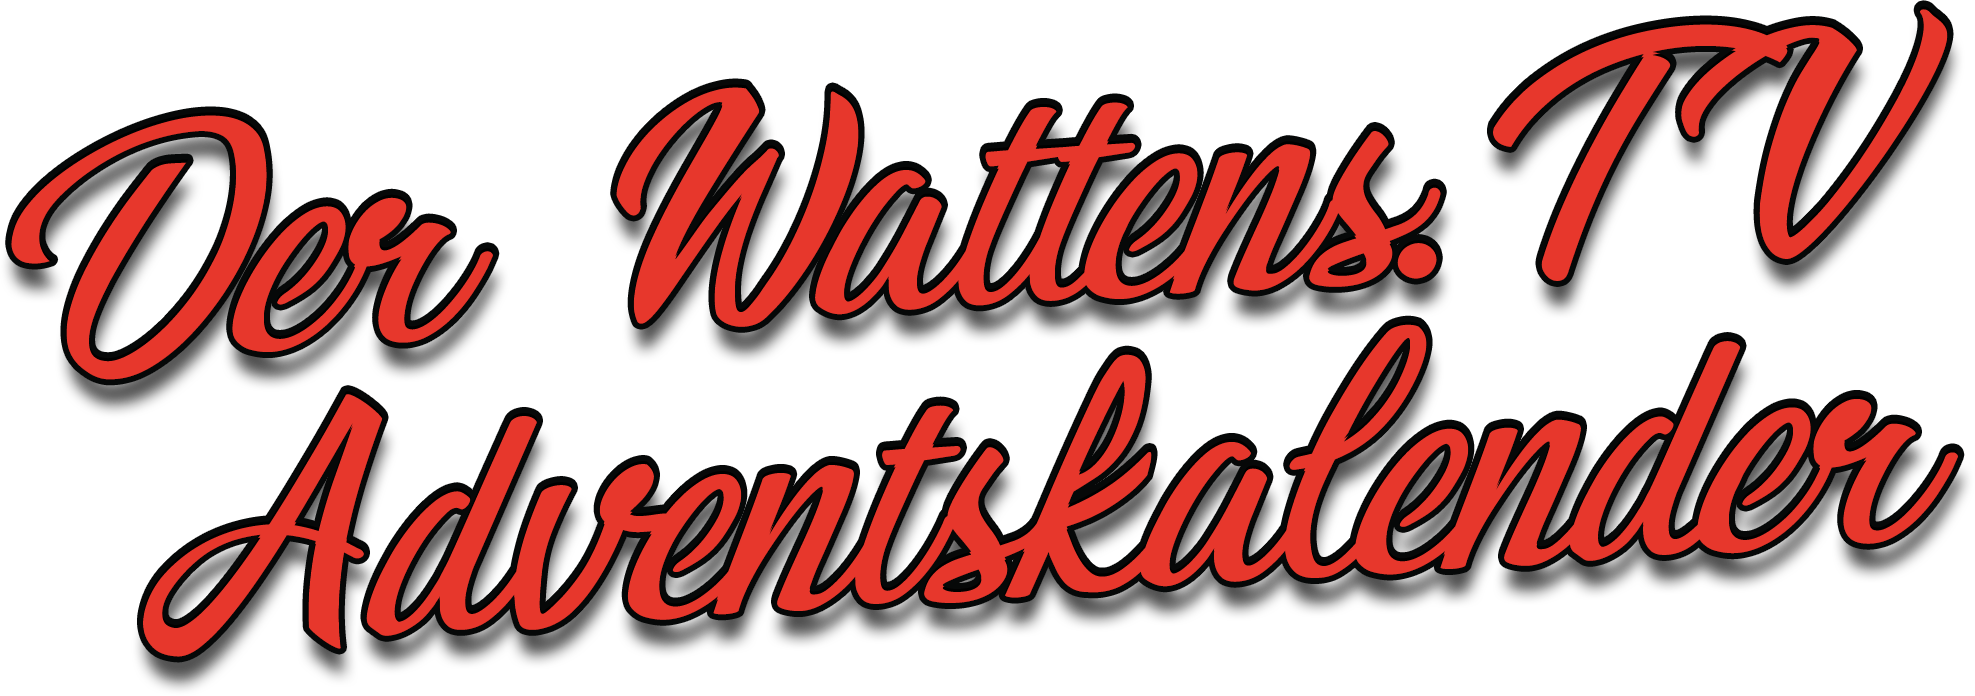 Wattens.TV Adventkalender